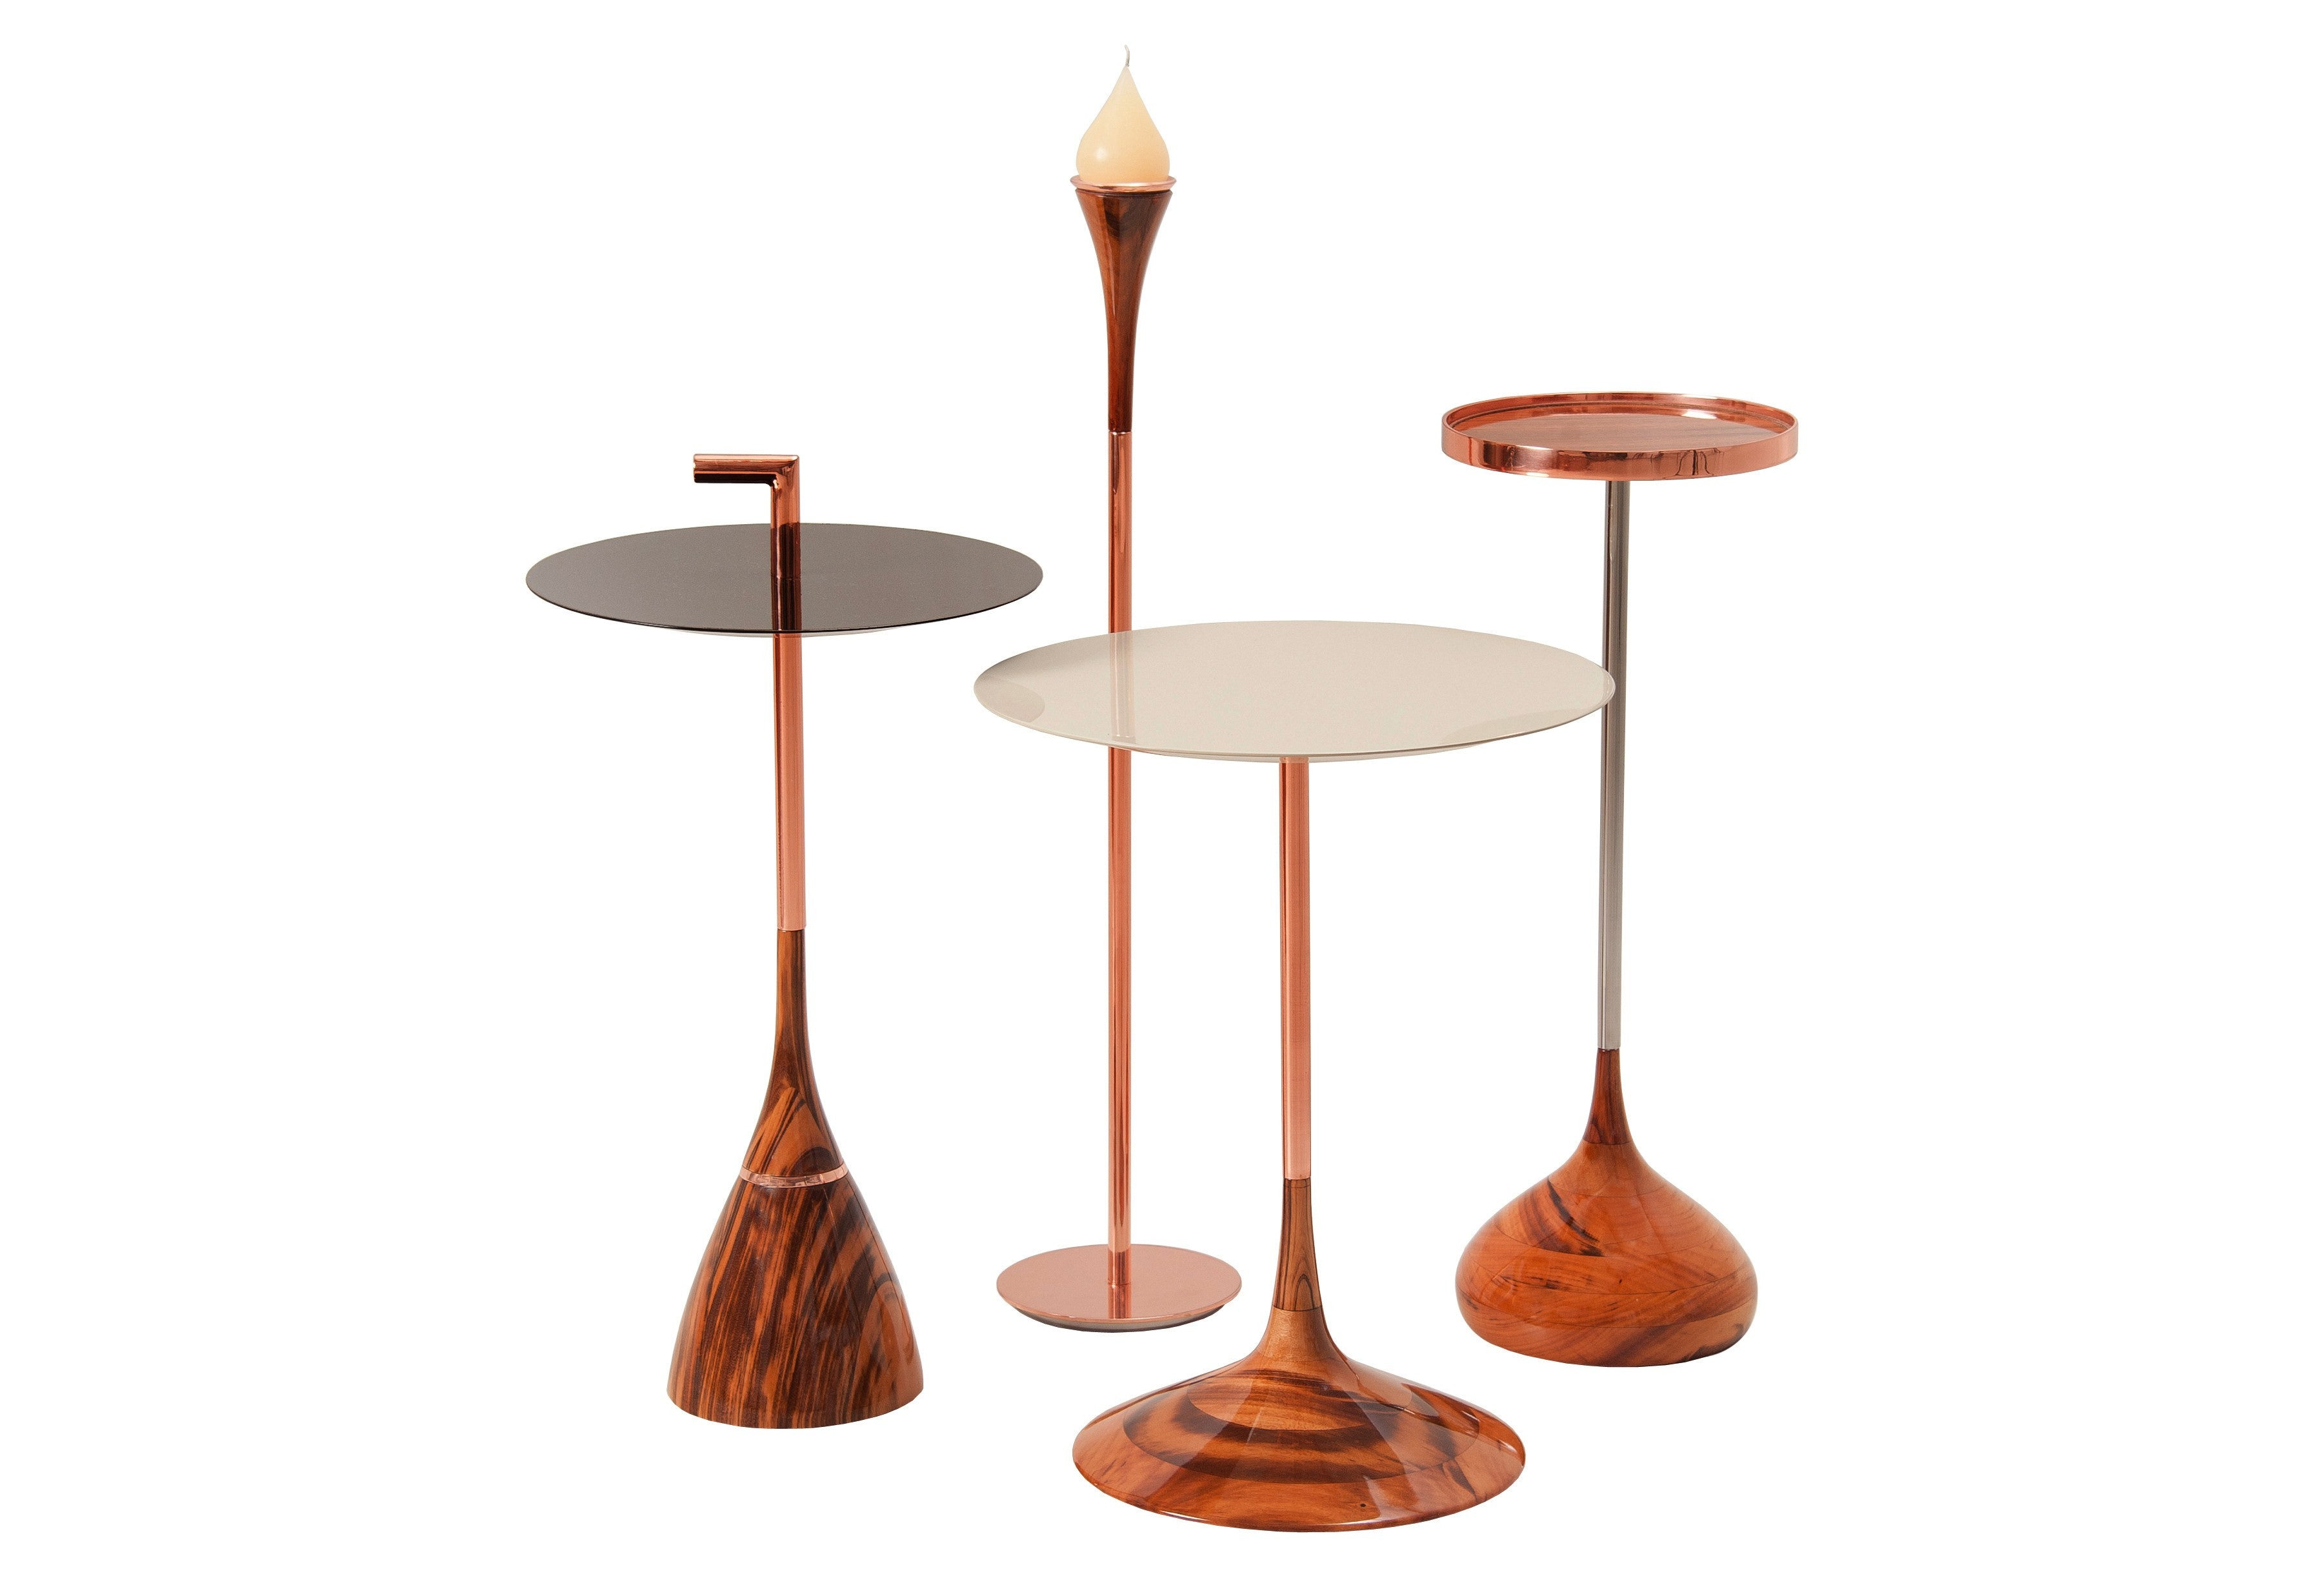 Gota side table by Lattoog - Kelly Christian Designs